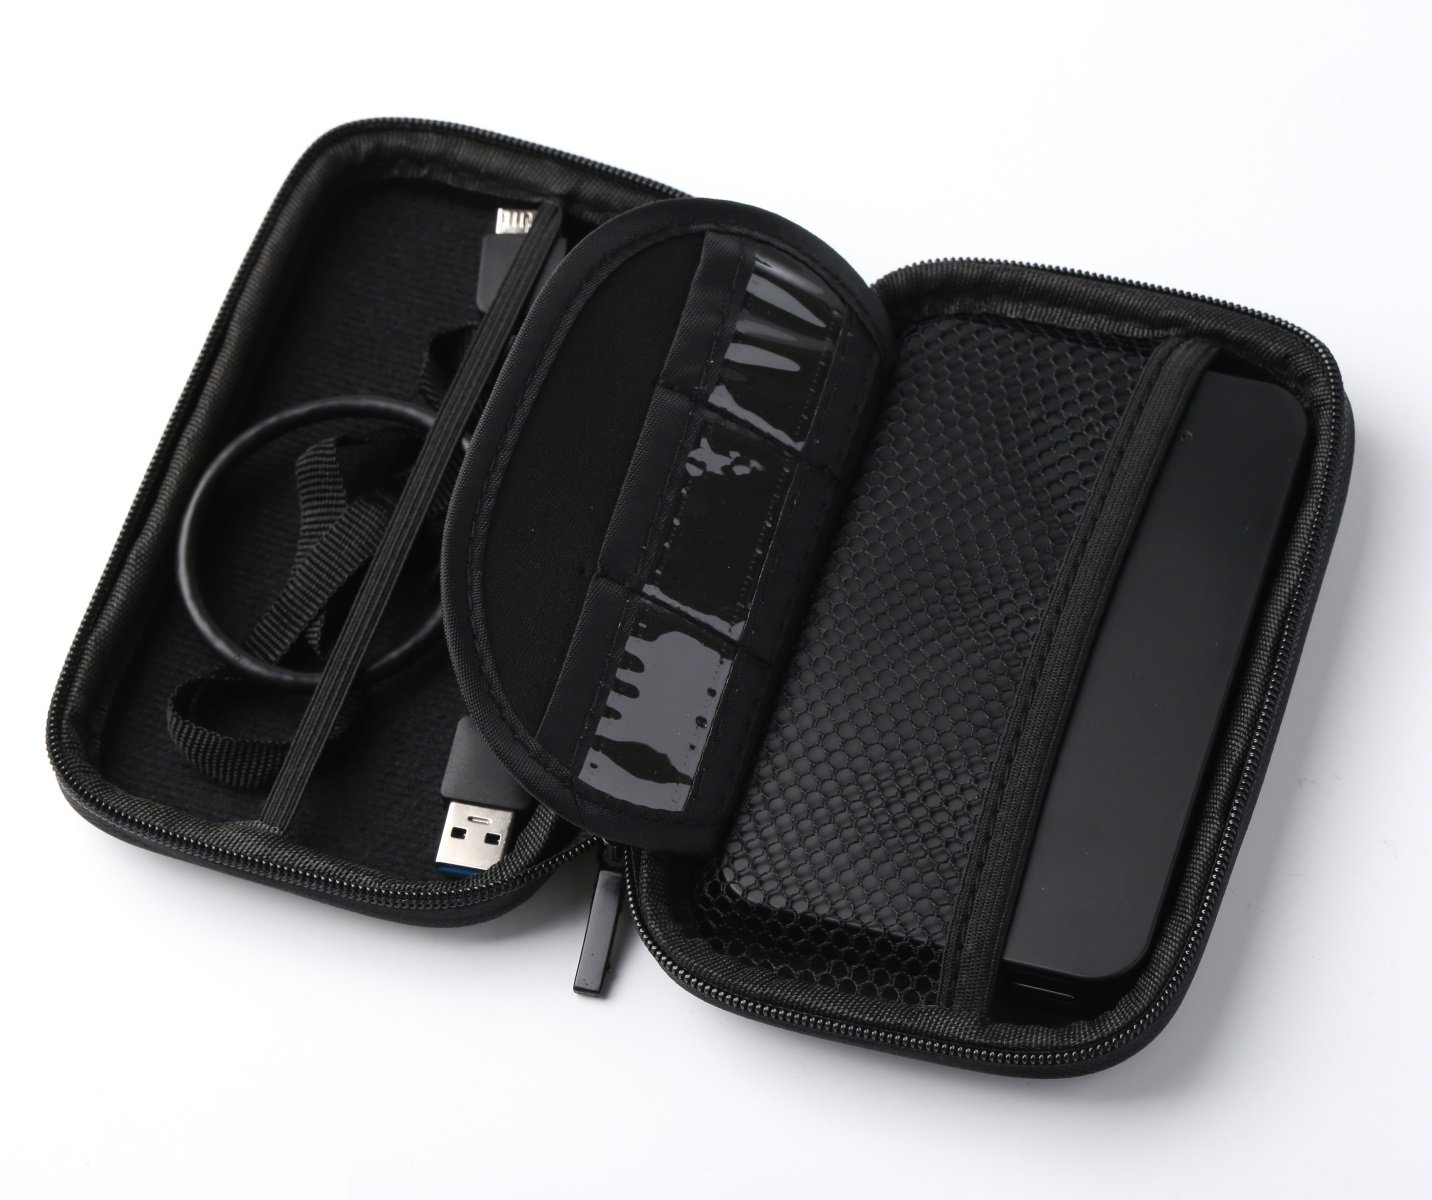 Junmin Laptop USB 3.0 Sata III External Hard Drive Enclosure Case with bag for 2.5 Inch Slim SSD HDD